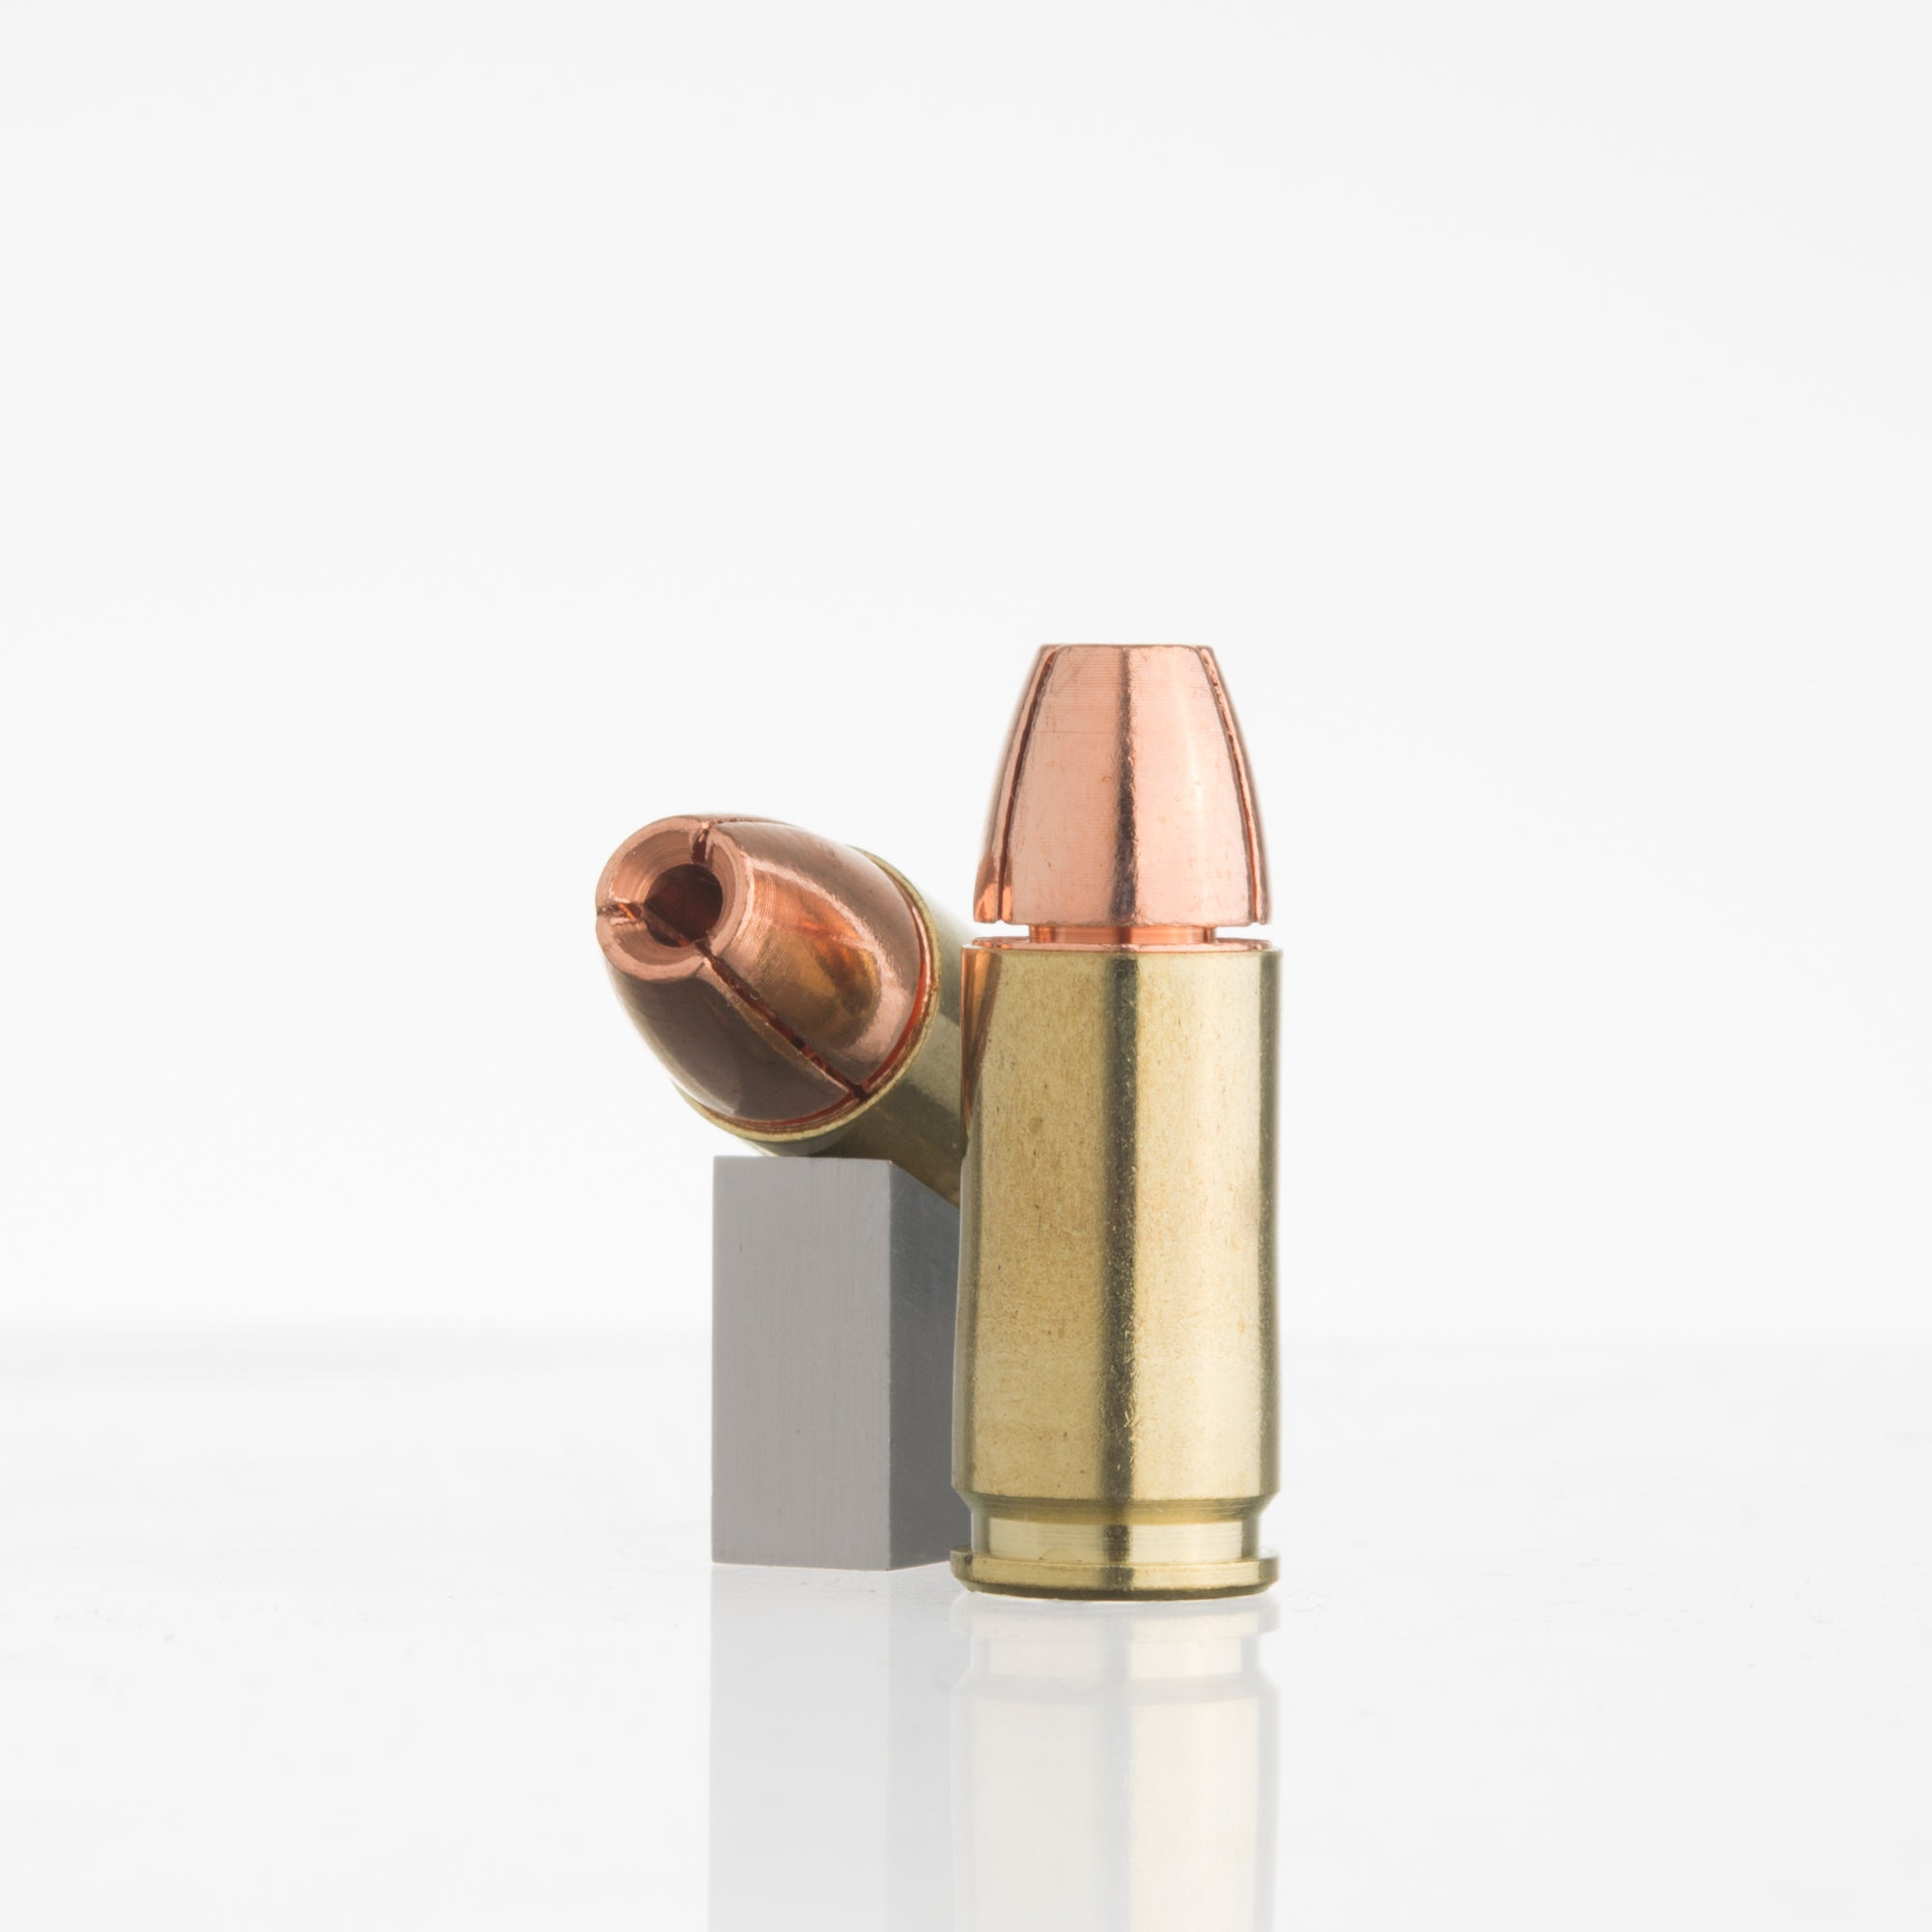 9mm Luger 105gr Controlled Fracturing Ammunition